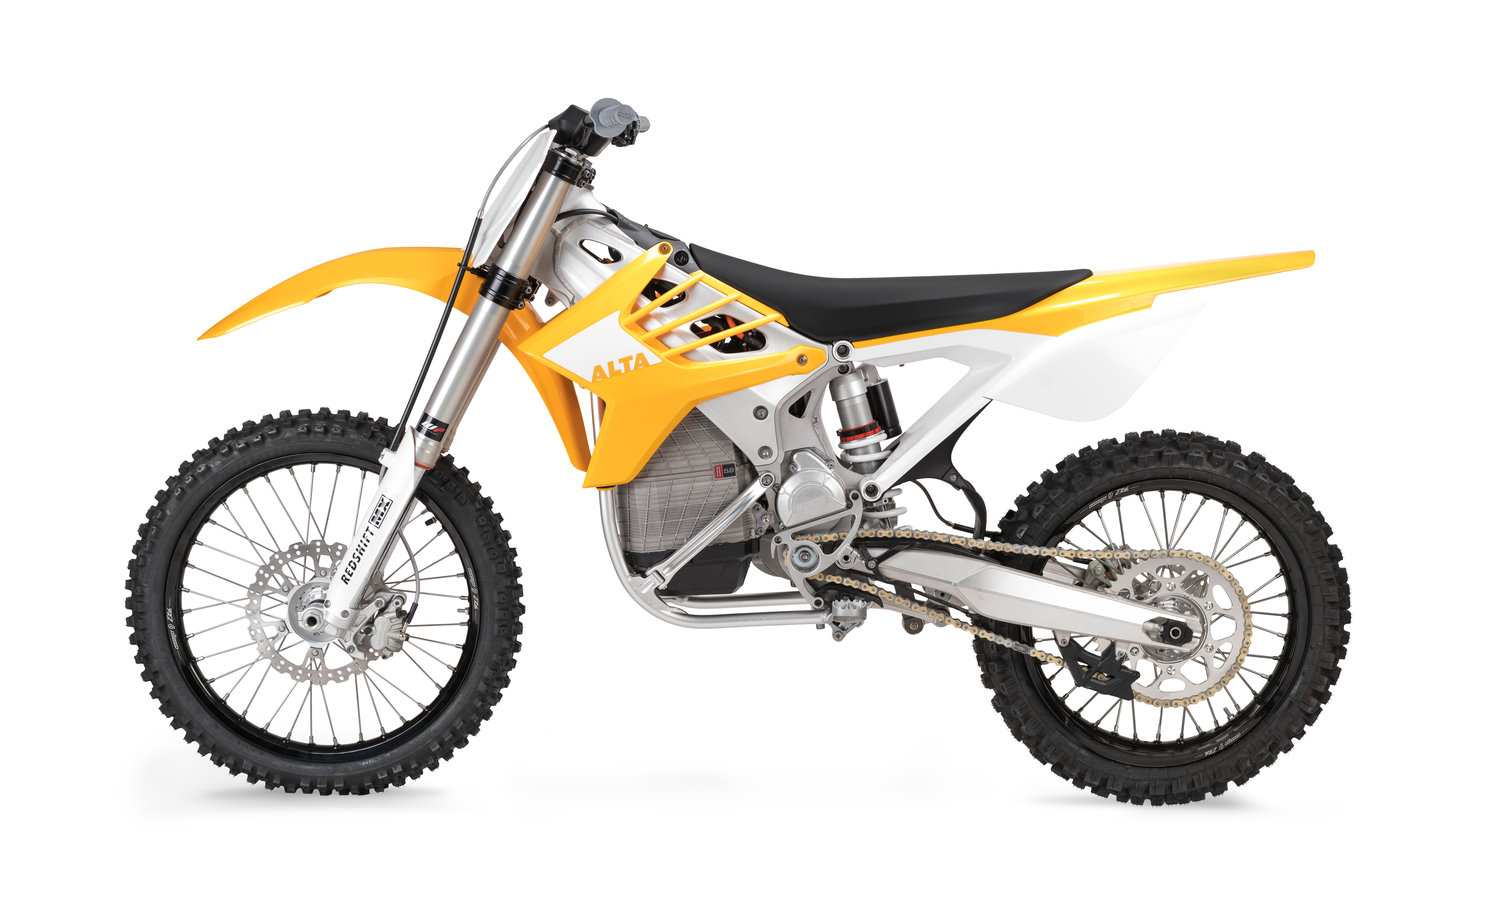 Map of dirt bikes for sale in california every used dirt 2017 2018 - Redshiftmx_iso2 Jpg Redshiftmx_rightside Jpg Redshiftmx_leftside Jpg